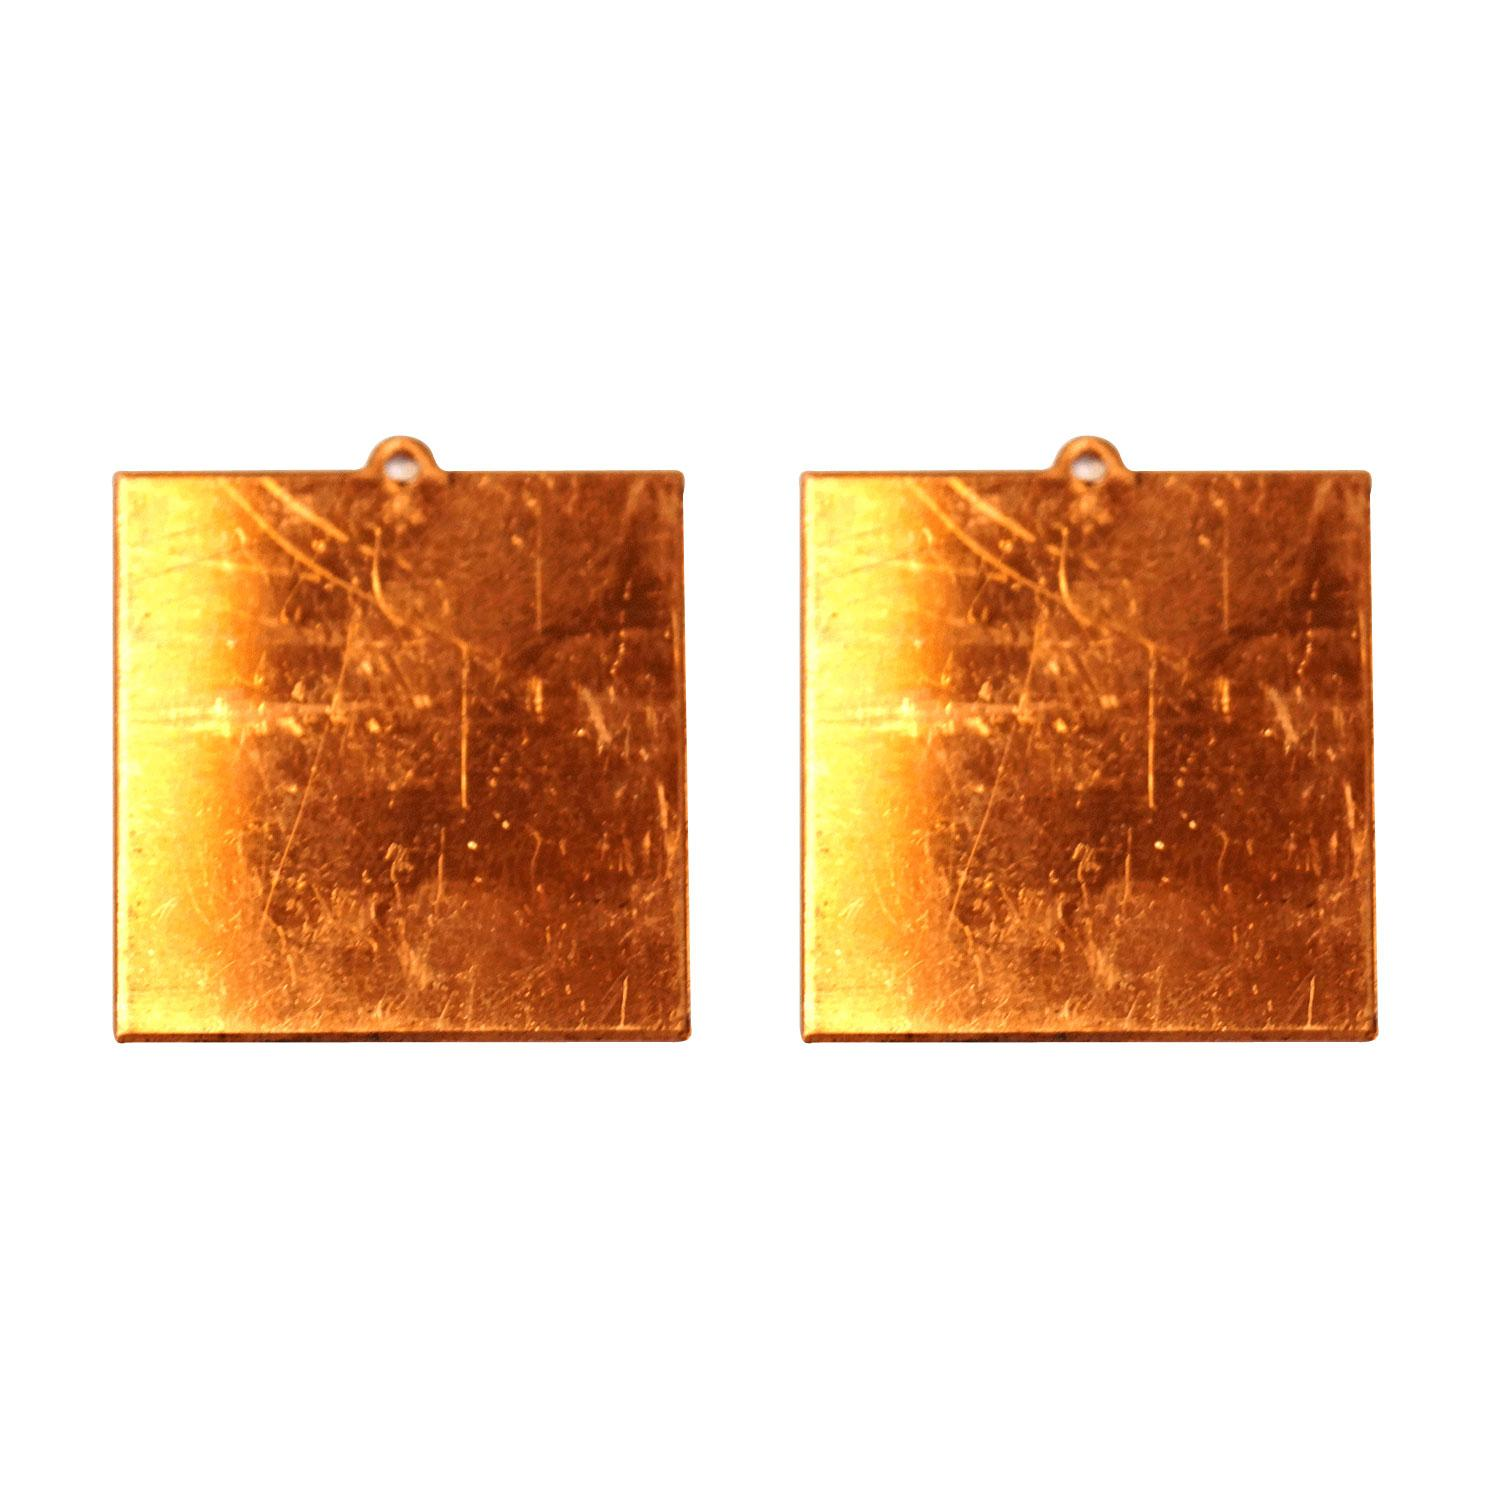 Square Copper Shape With Tab - 2 Pack